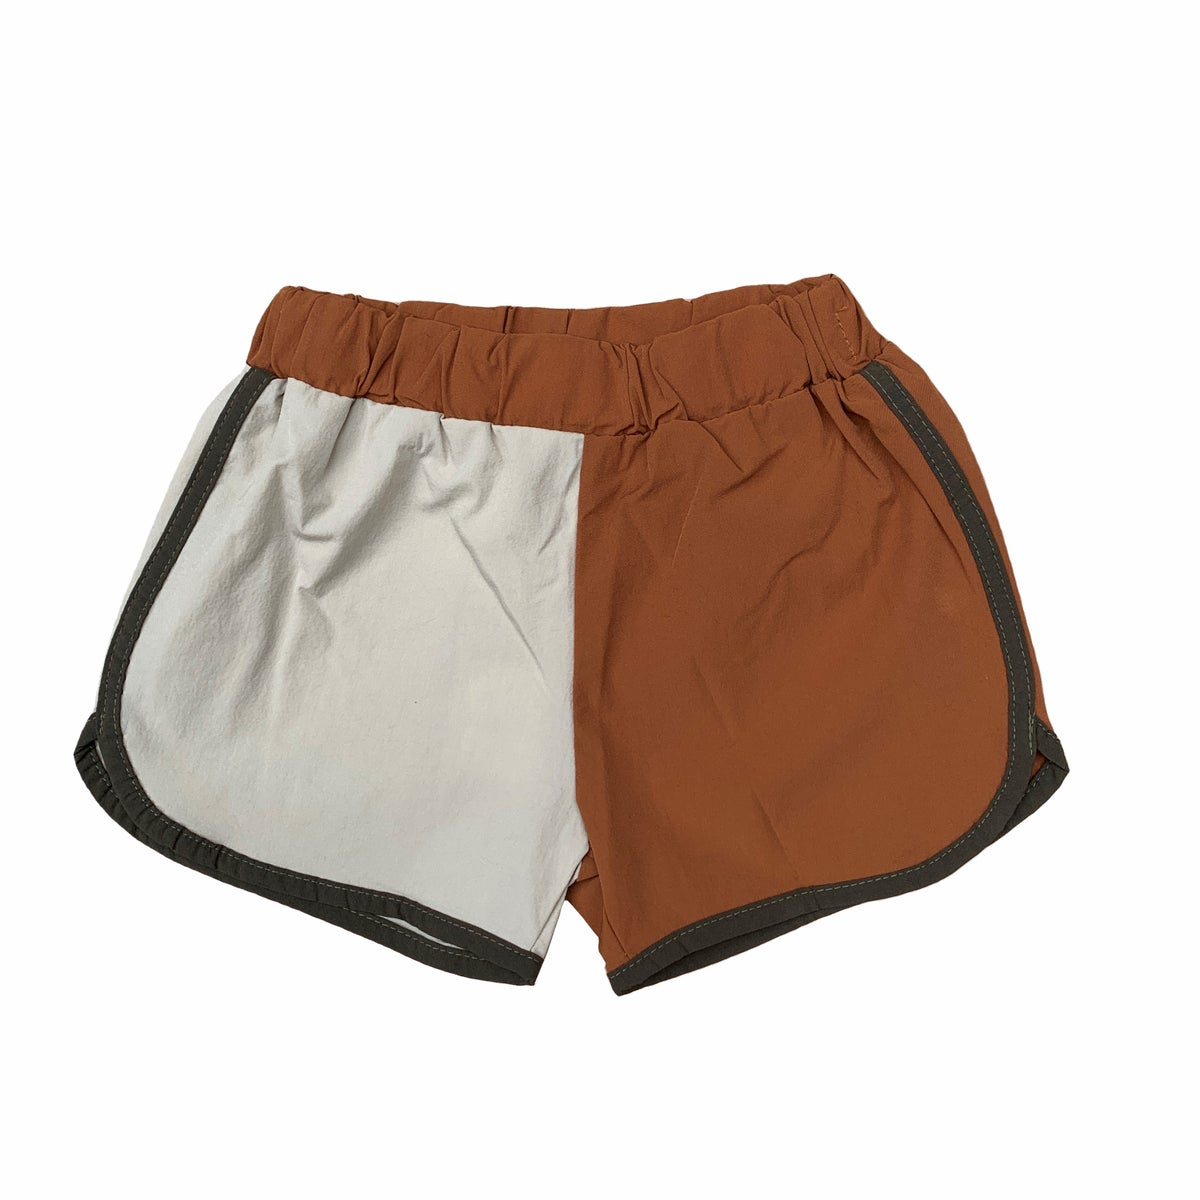 Image of Split coloured shorts rust and stone colour (was £18 now £14)